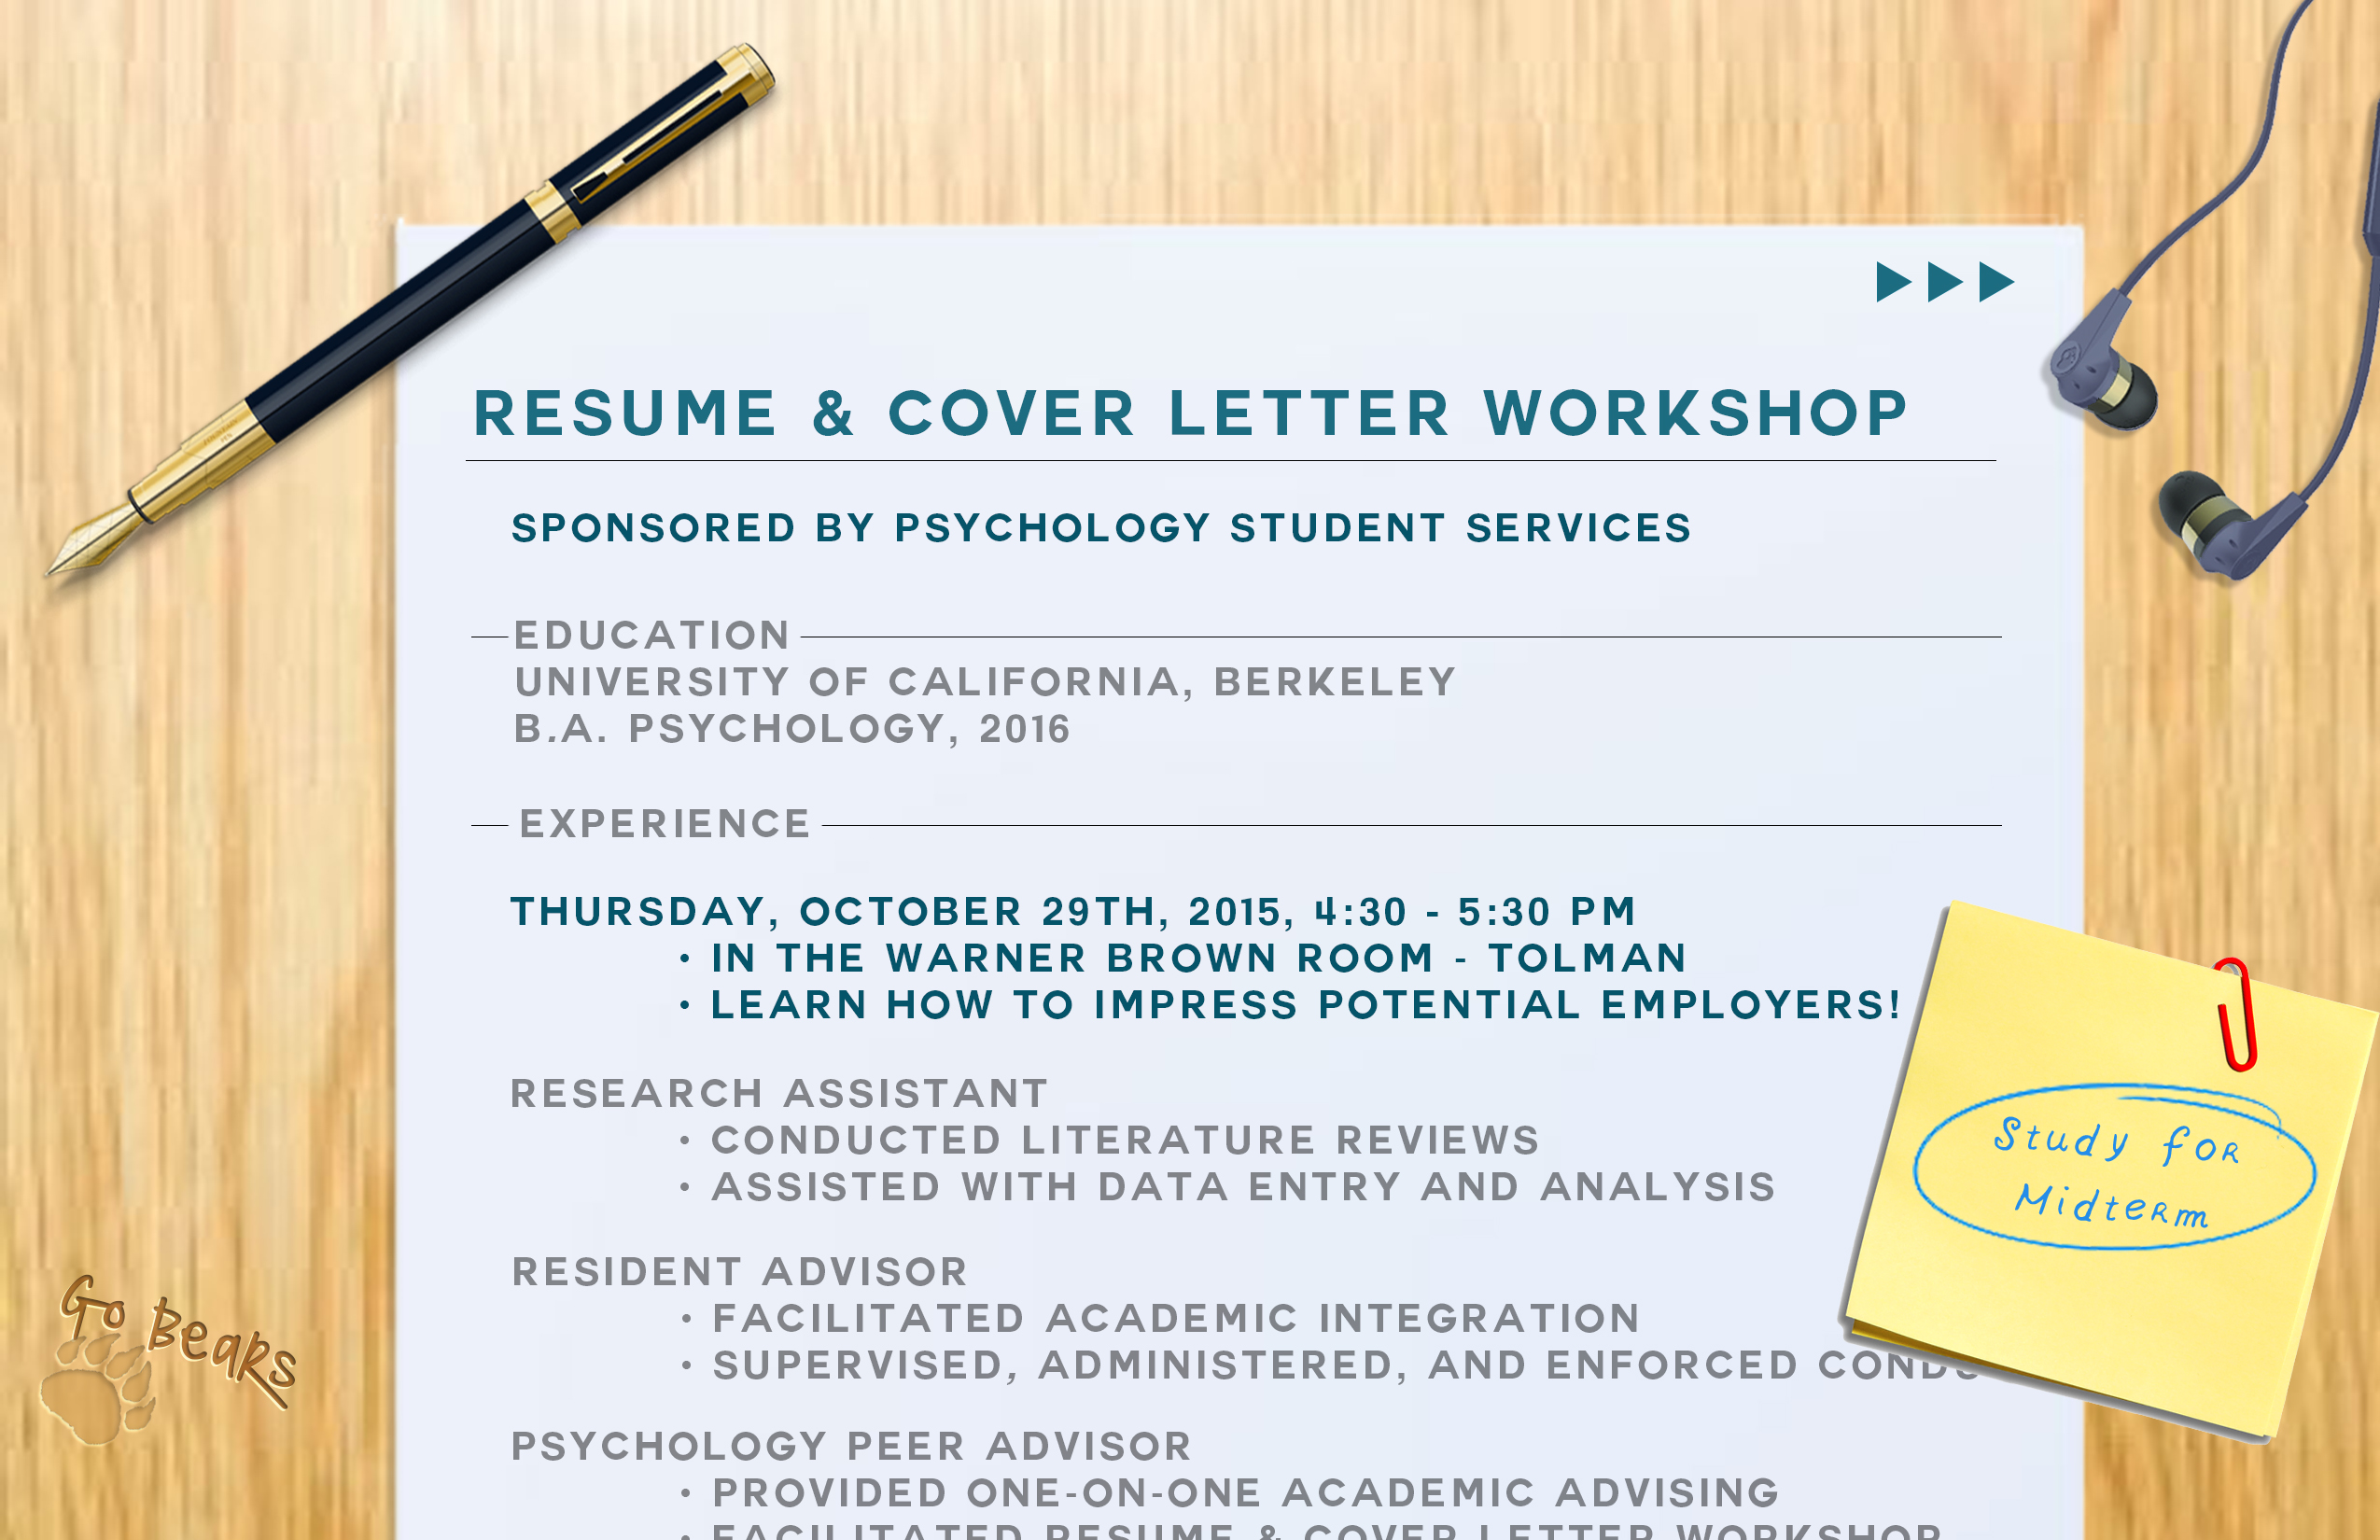 letter service berkeley past events uc psych 23137 | ResumeCoverLetterWorkshop 1